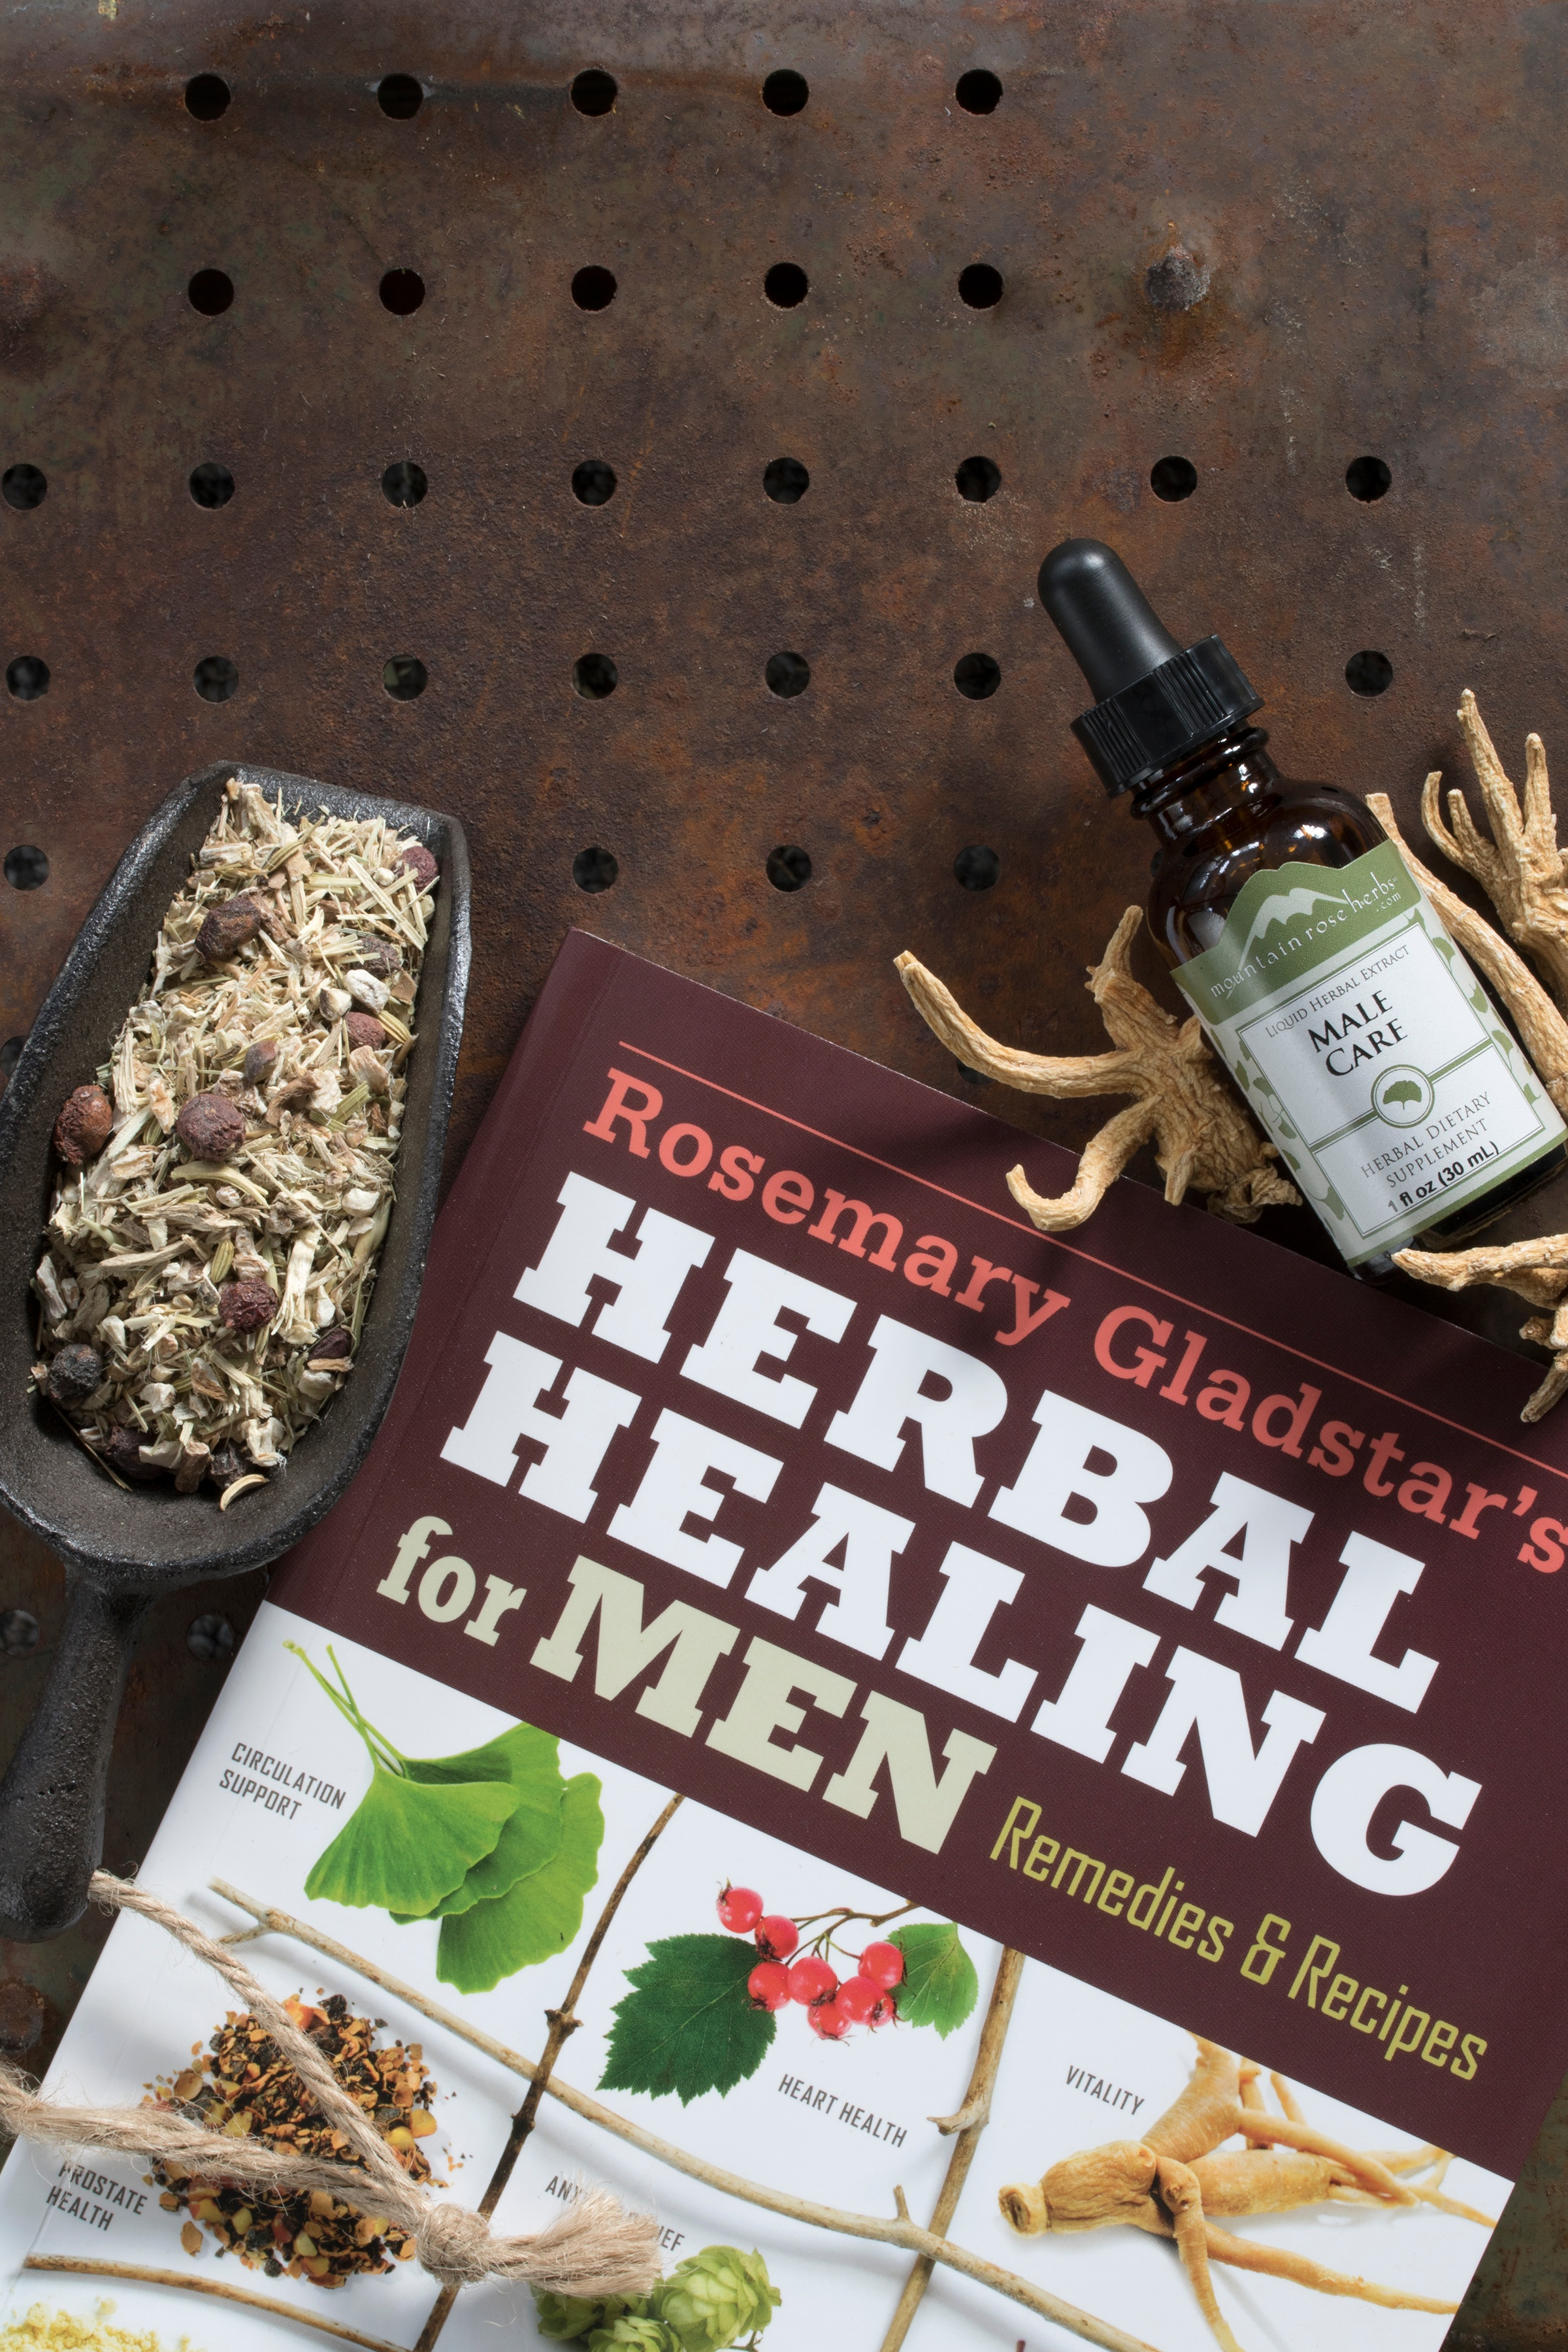 Herbal Healing For Men book sitting on locker metal next to Male Care extract and other dried herbs